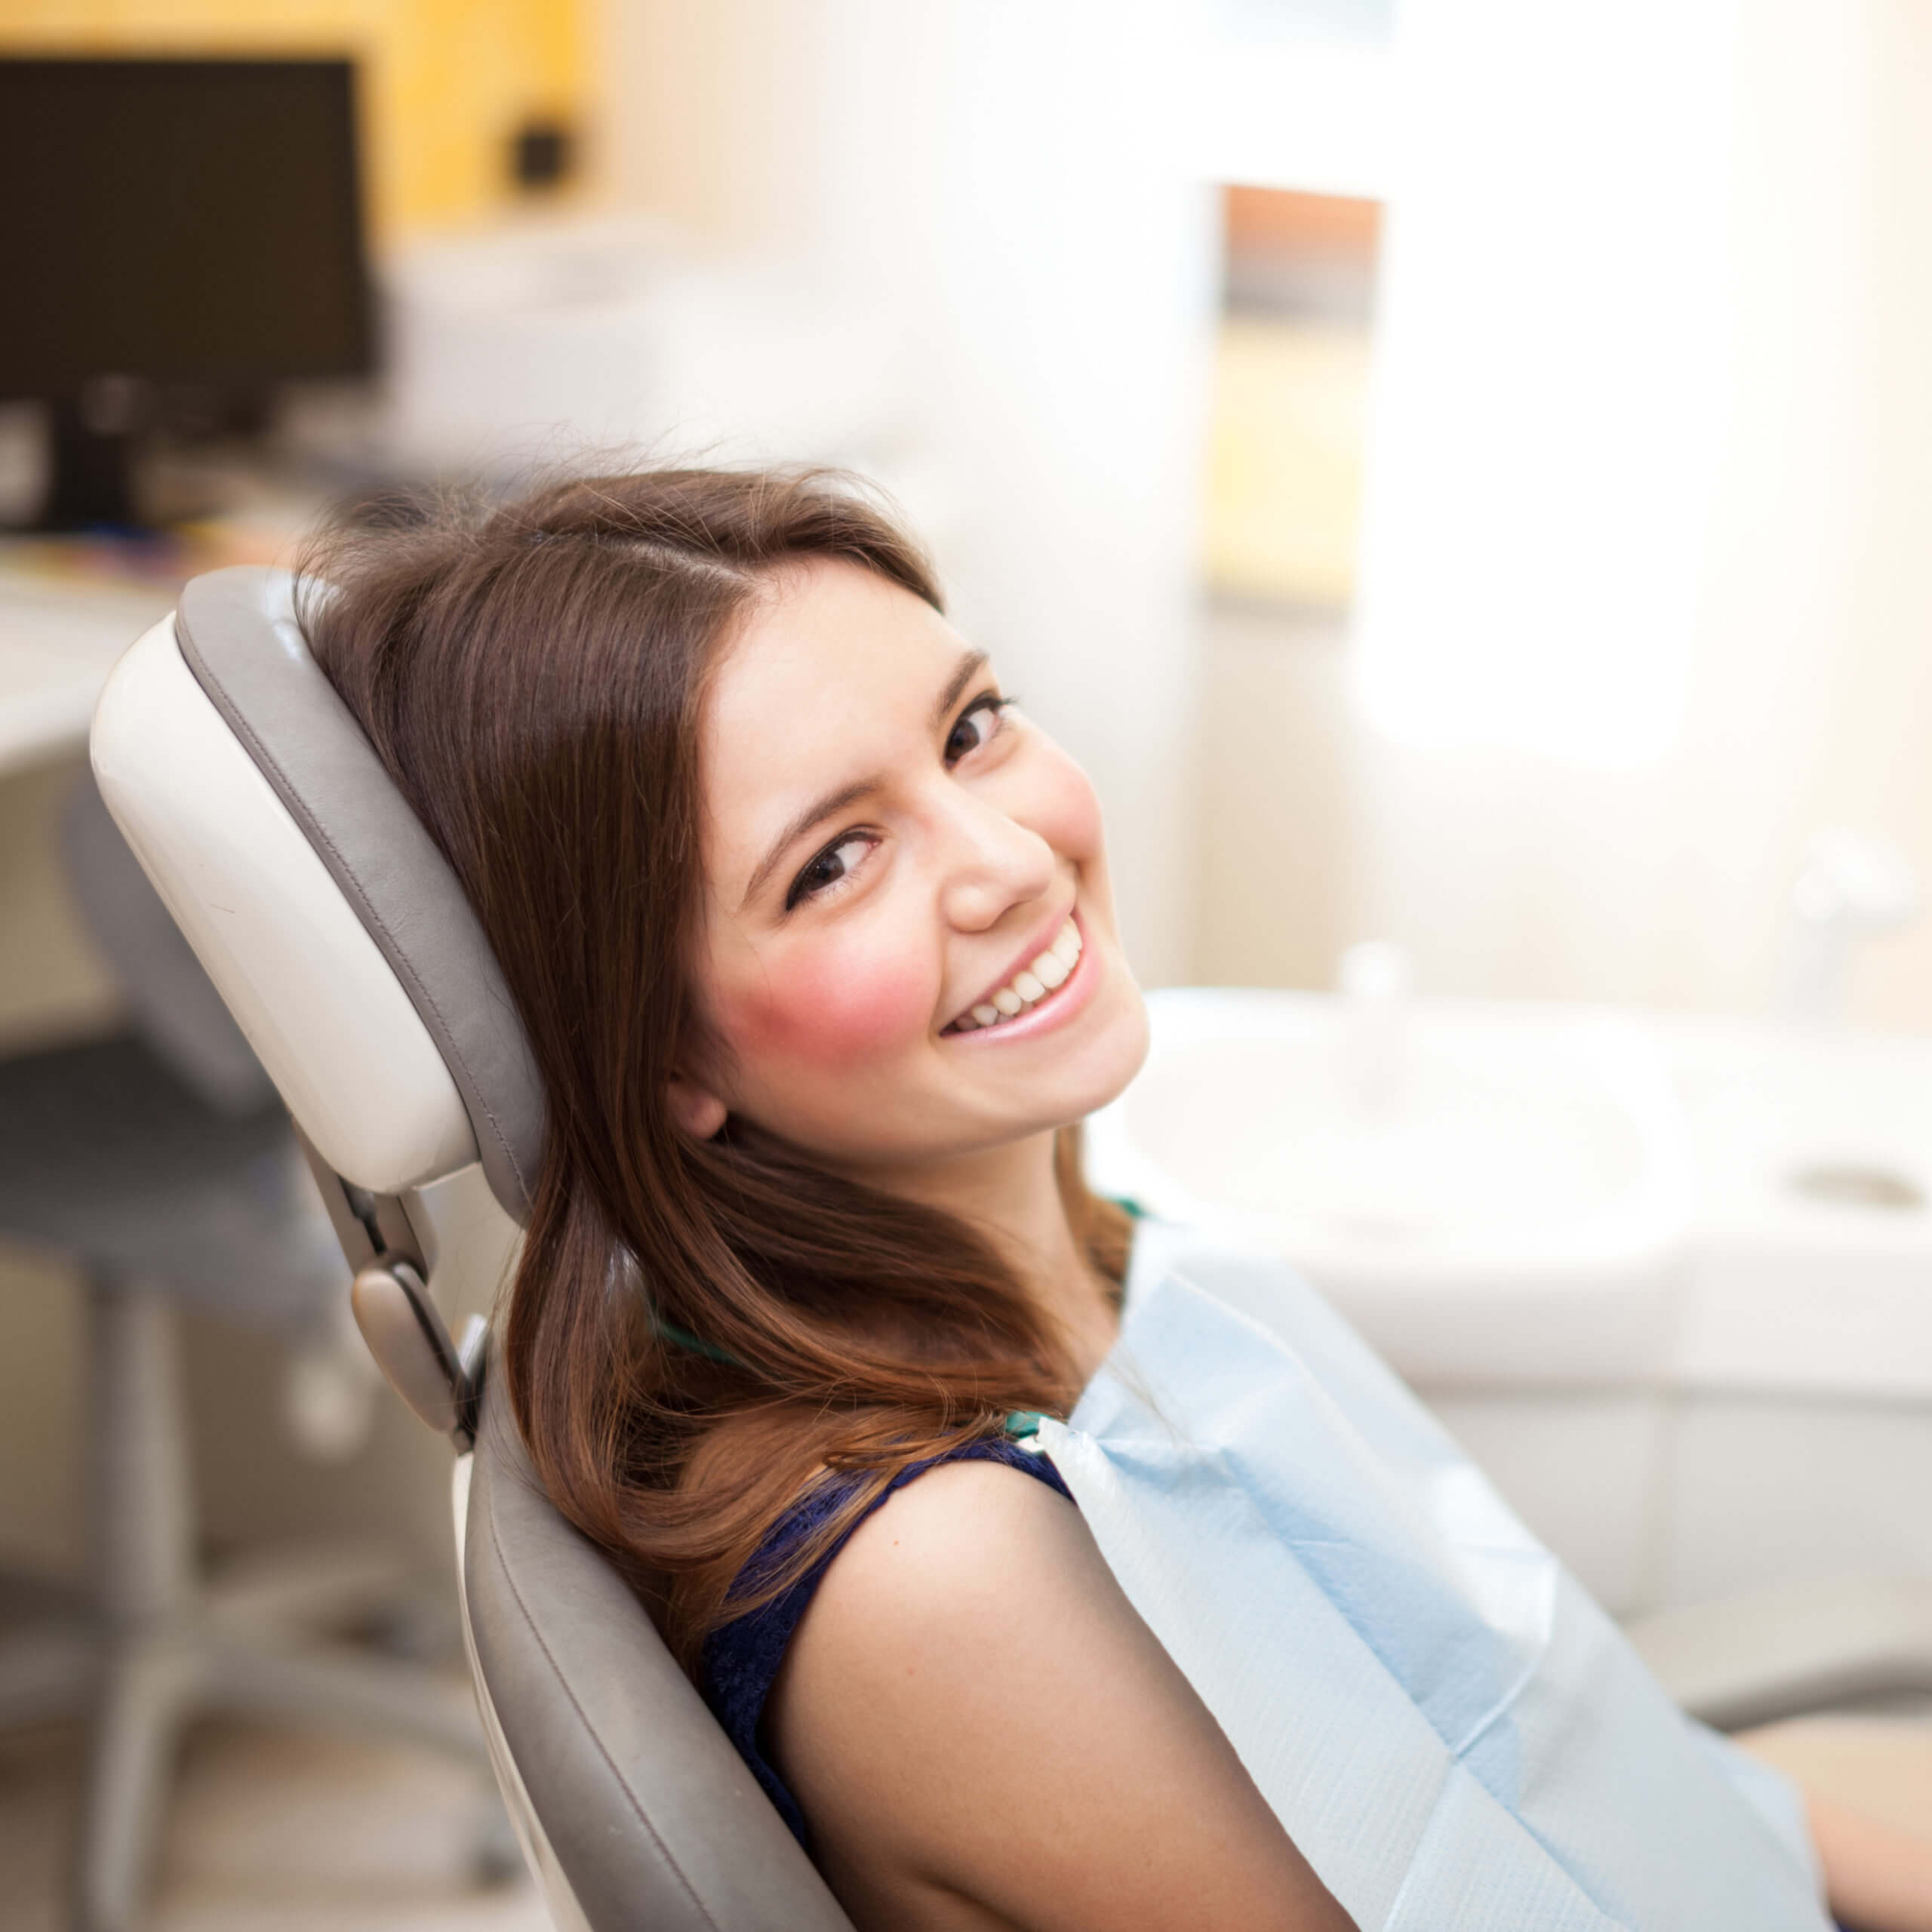 General Dentistry - Services available at the tooth place